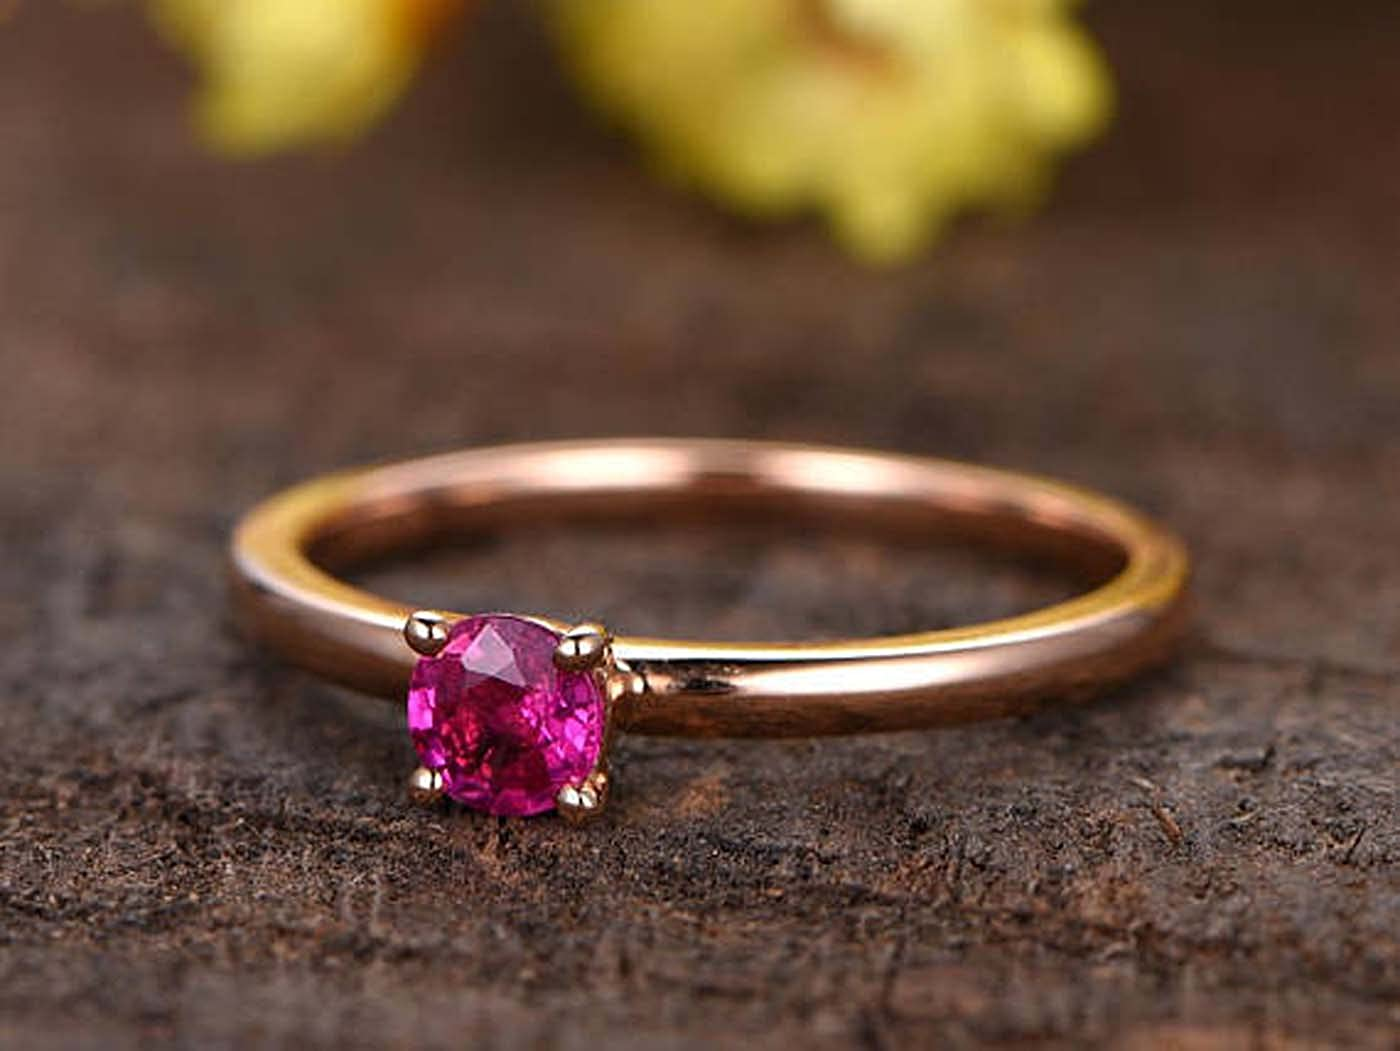 Dabangjewels 4mm Round Cut Pink Ruby 14k Rose Gold Over .925 Sterling Silver Solitaire Engagement Ring For Womens